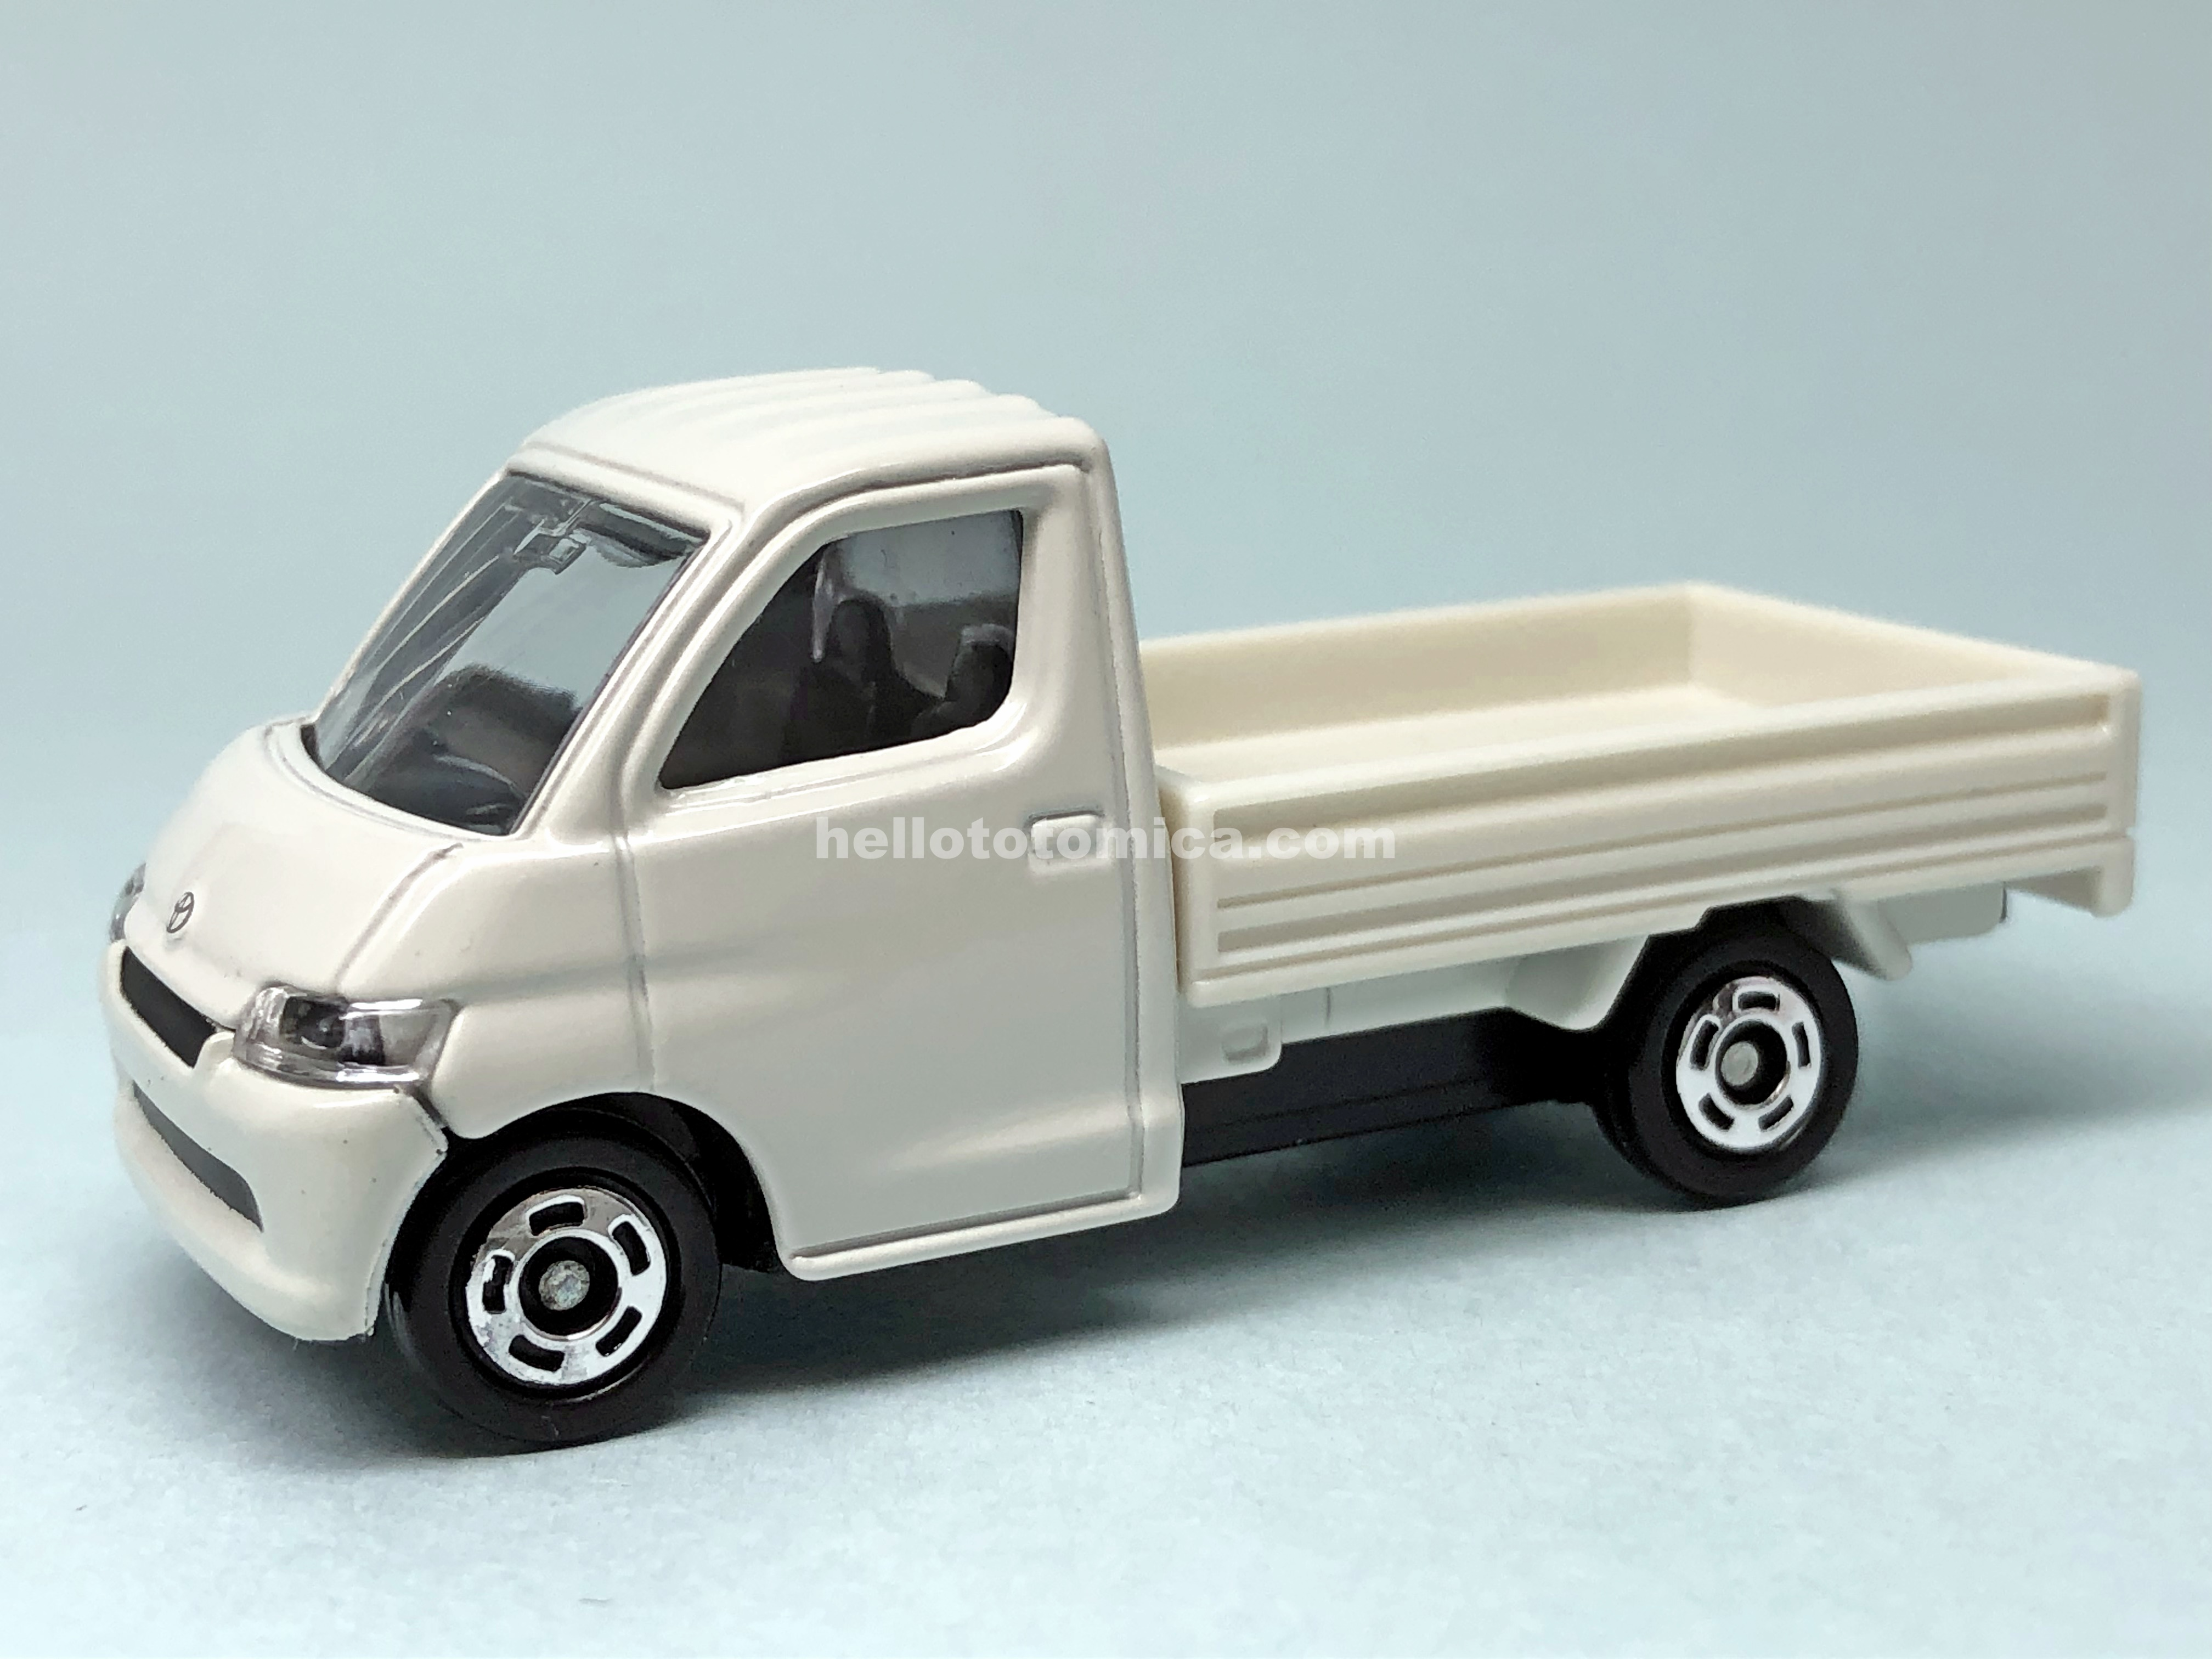 97-6 TOYOTA TOWN ACE